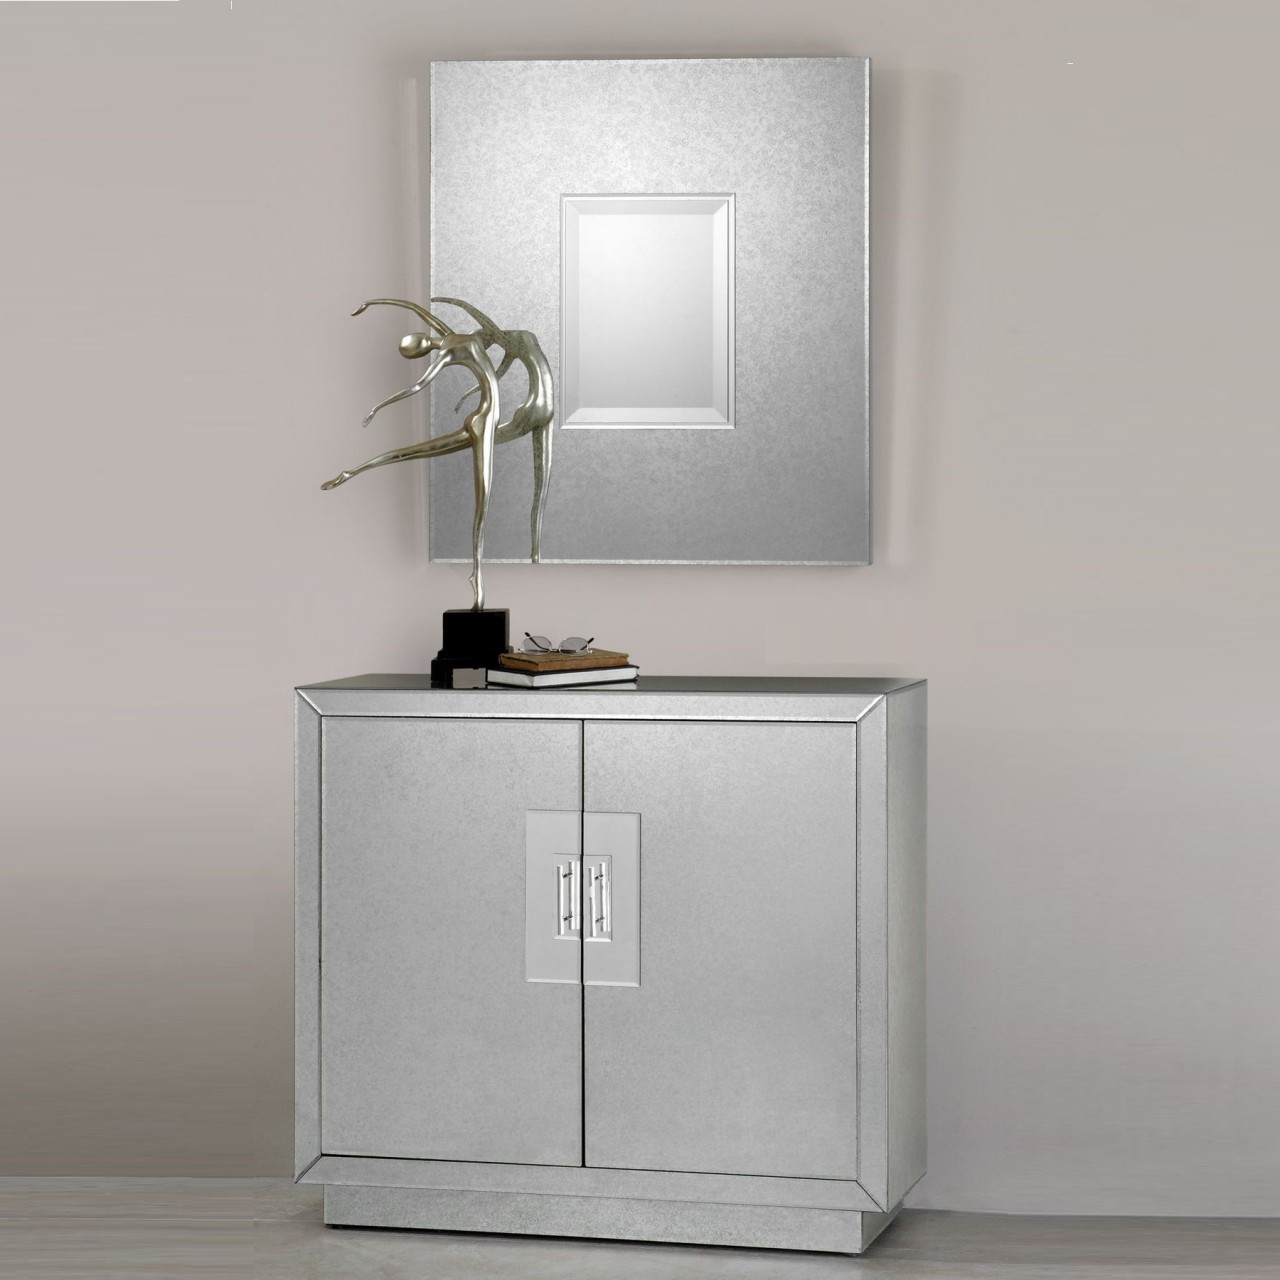 Mirrored Cabinet: Andover Mirrored Console Cabinet With 2 Doors